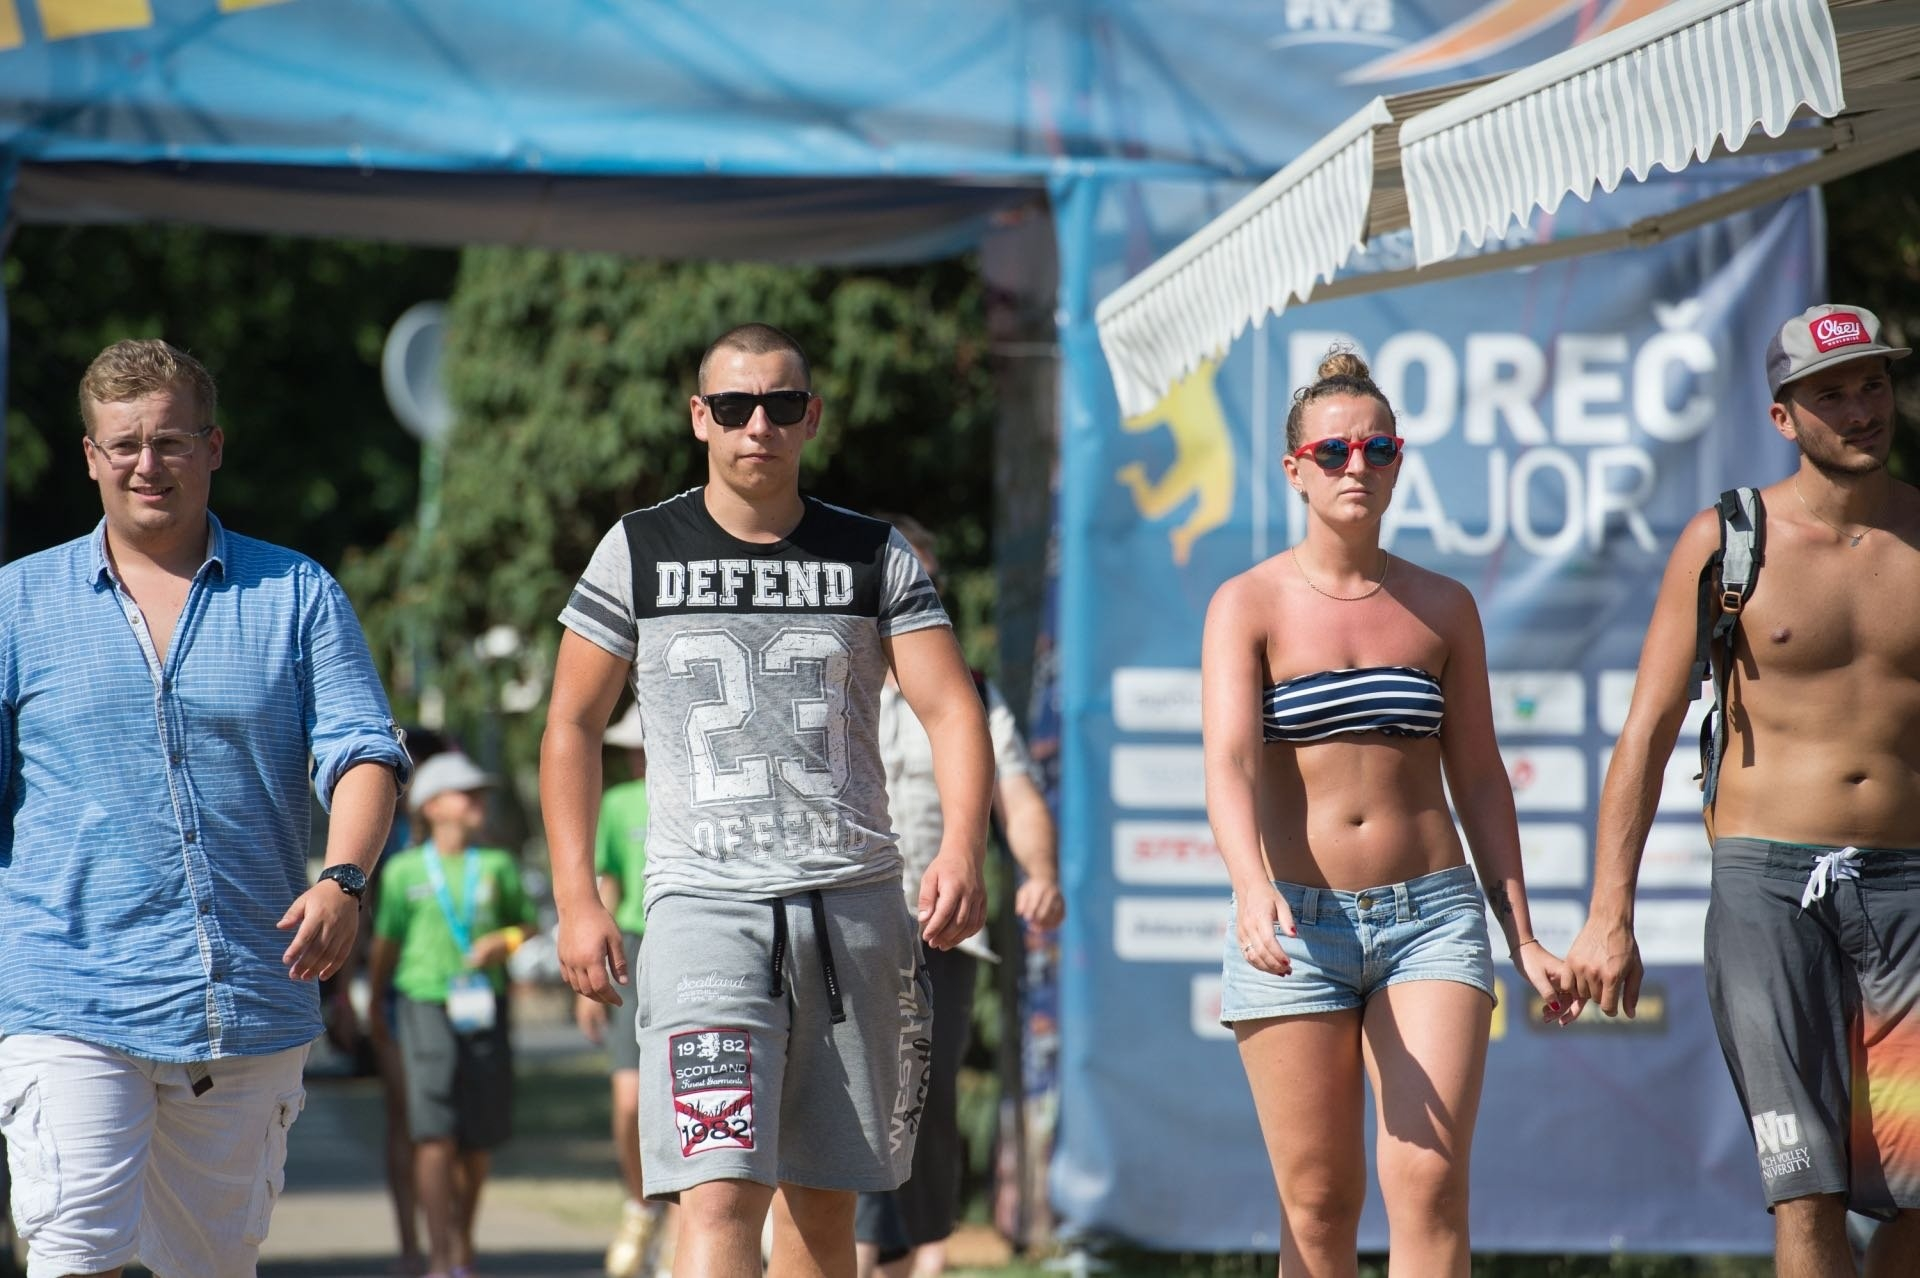 Ready for the #PorecMajor like… Photocredit: Bernhard Horst